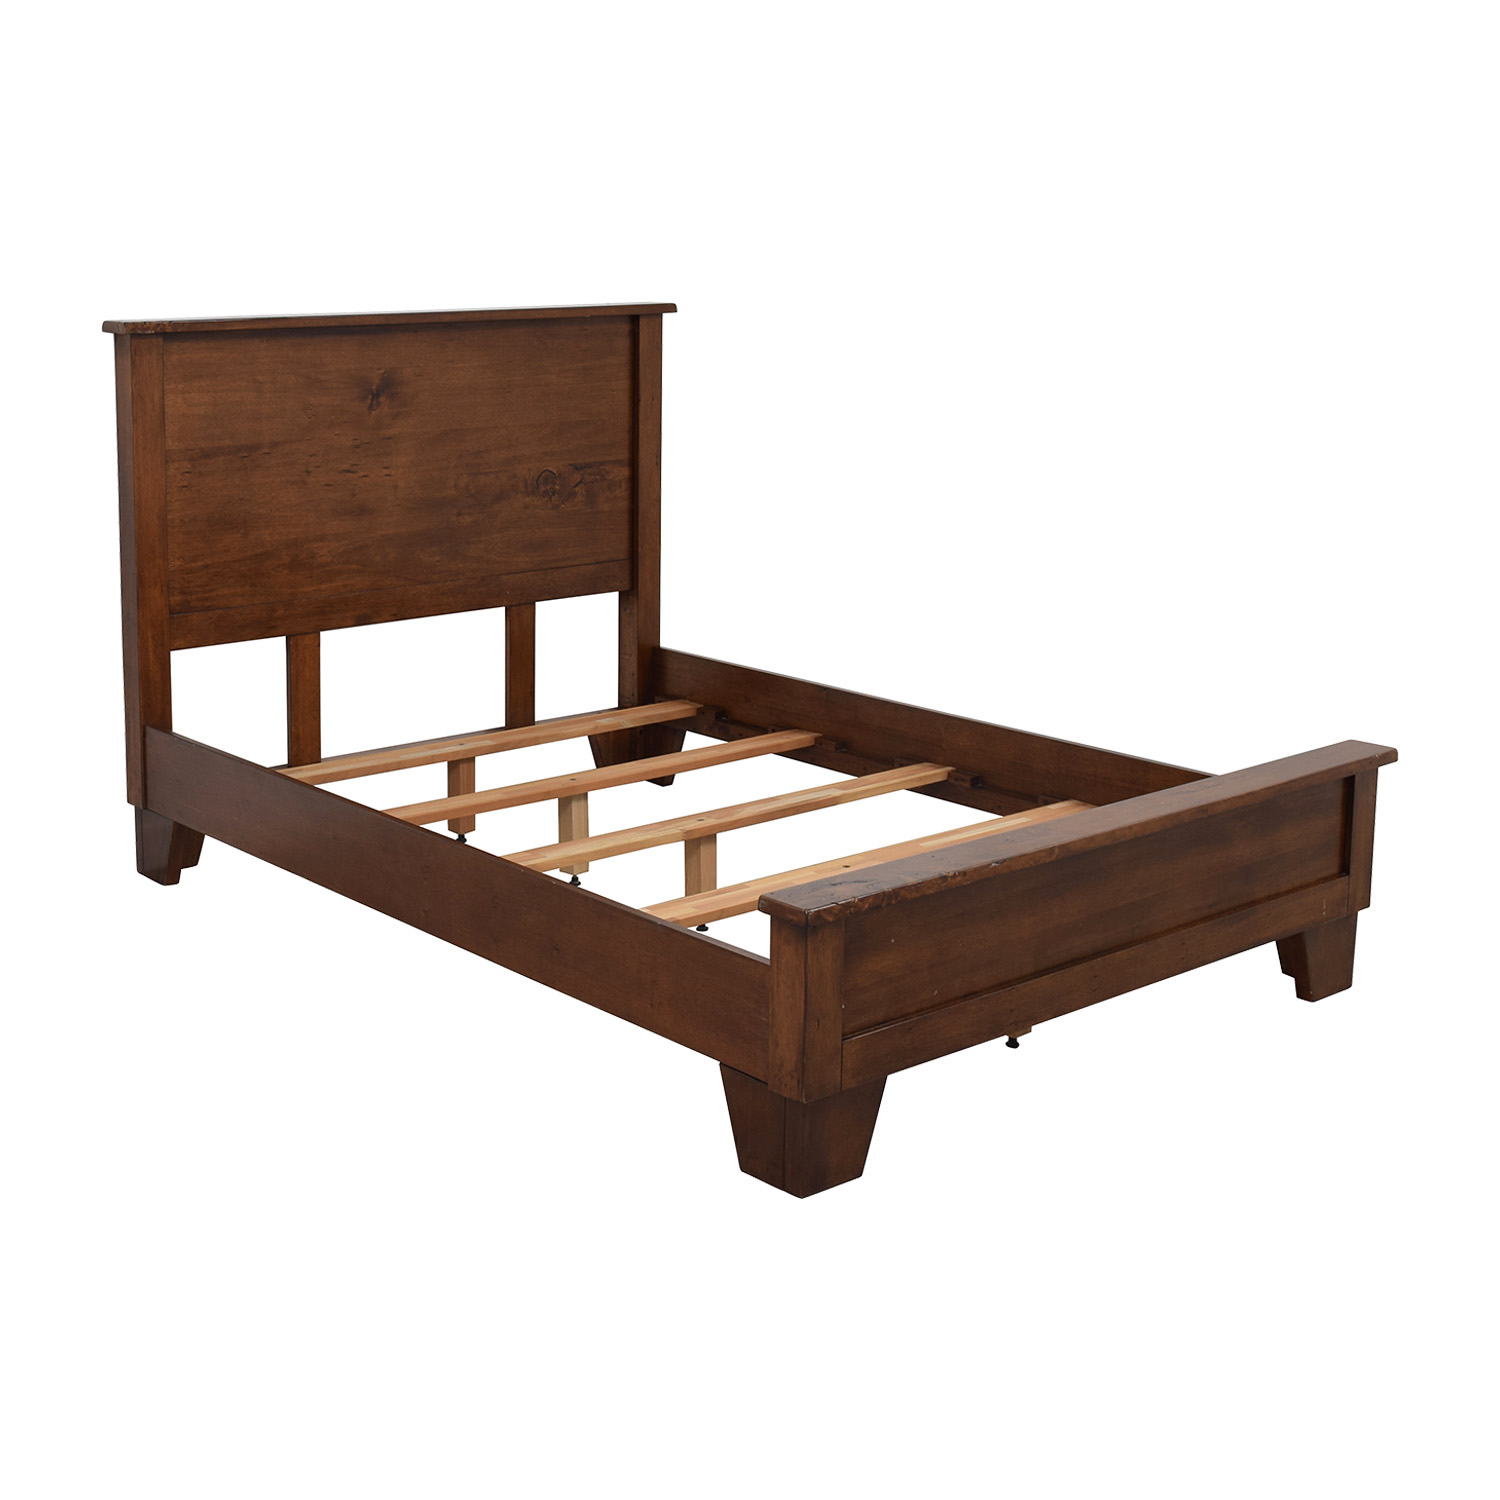 New Full Bed Frame Ideas